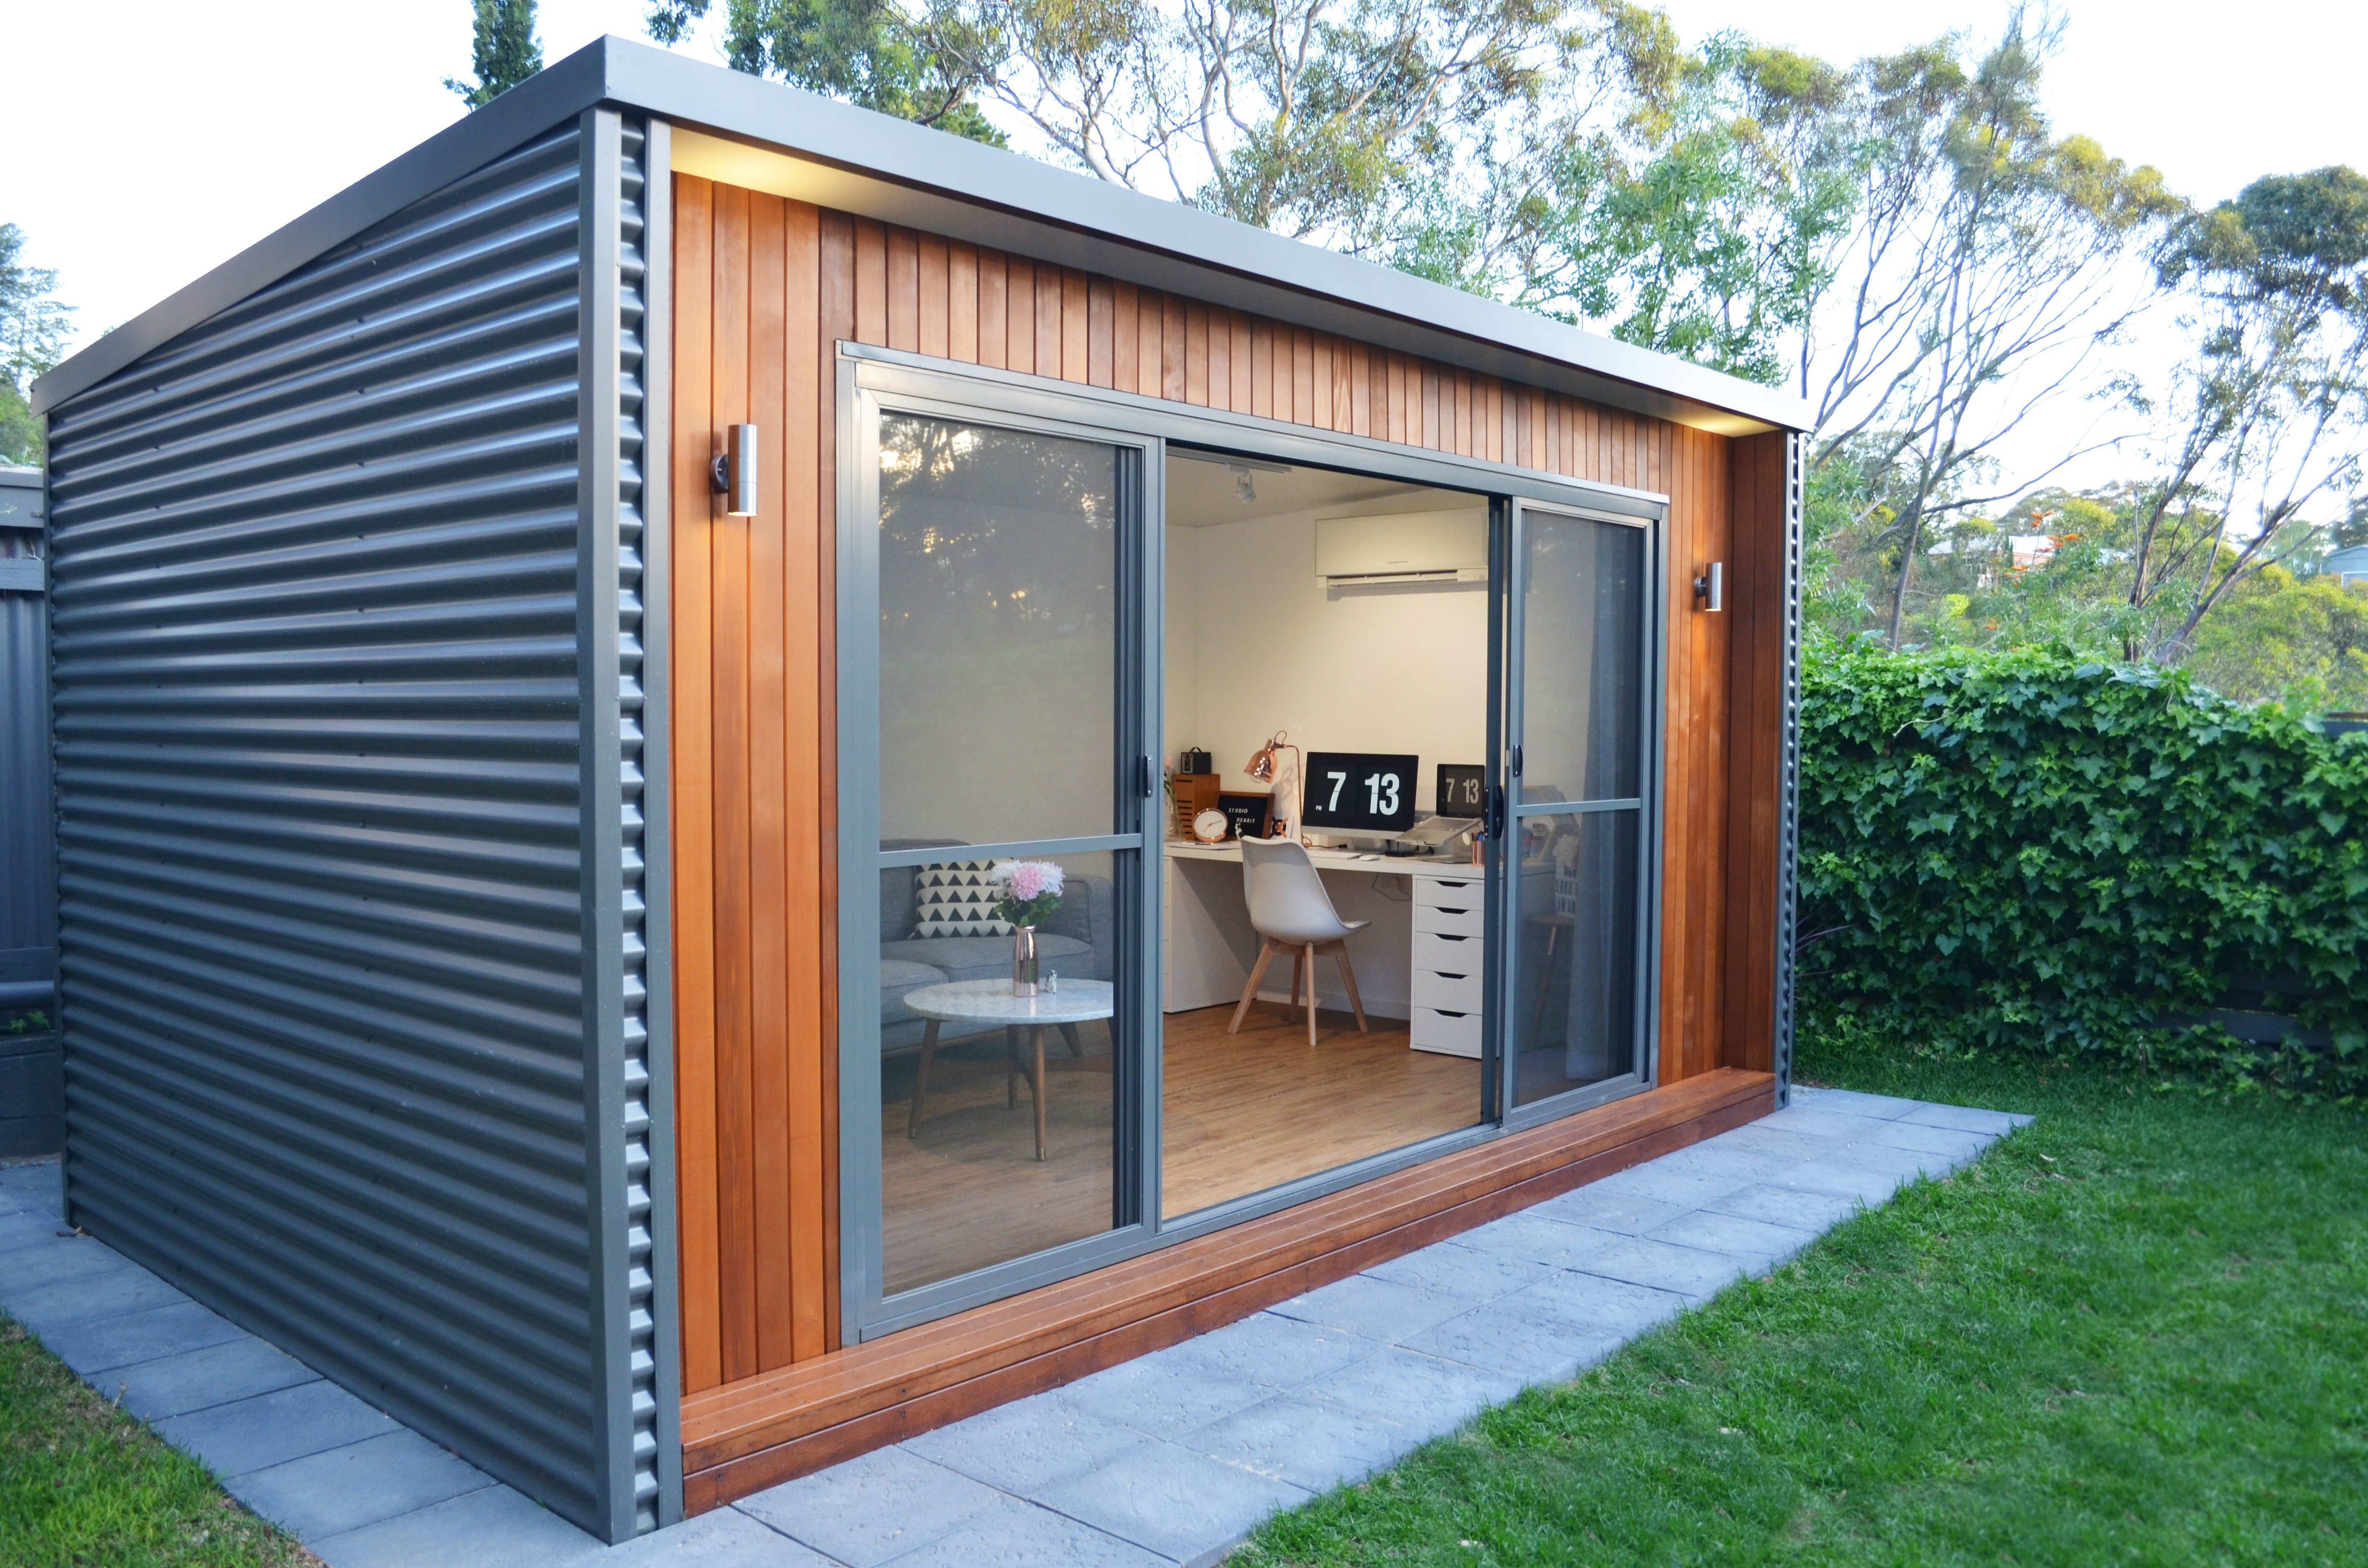 Design Studio Quaint And Neat As A Pin Backyard Studio Kamaroo Design Backyard Studio Backyard Office Studio Shed